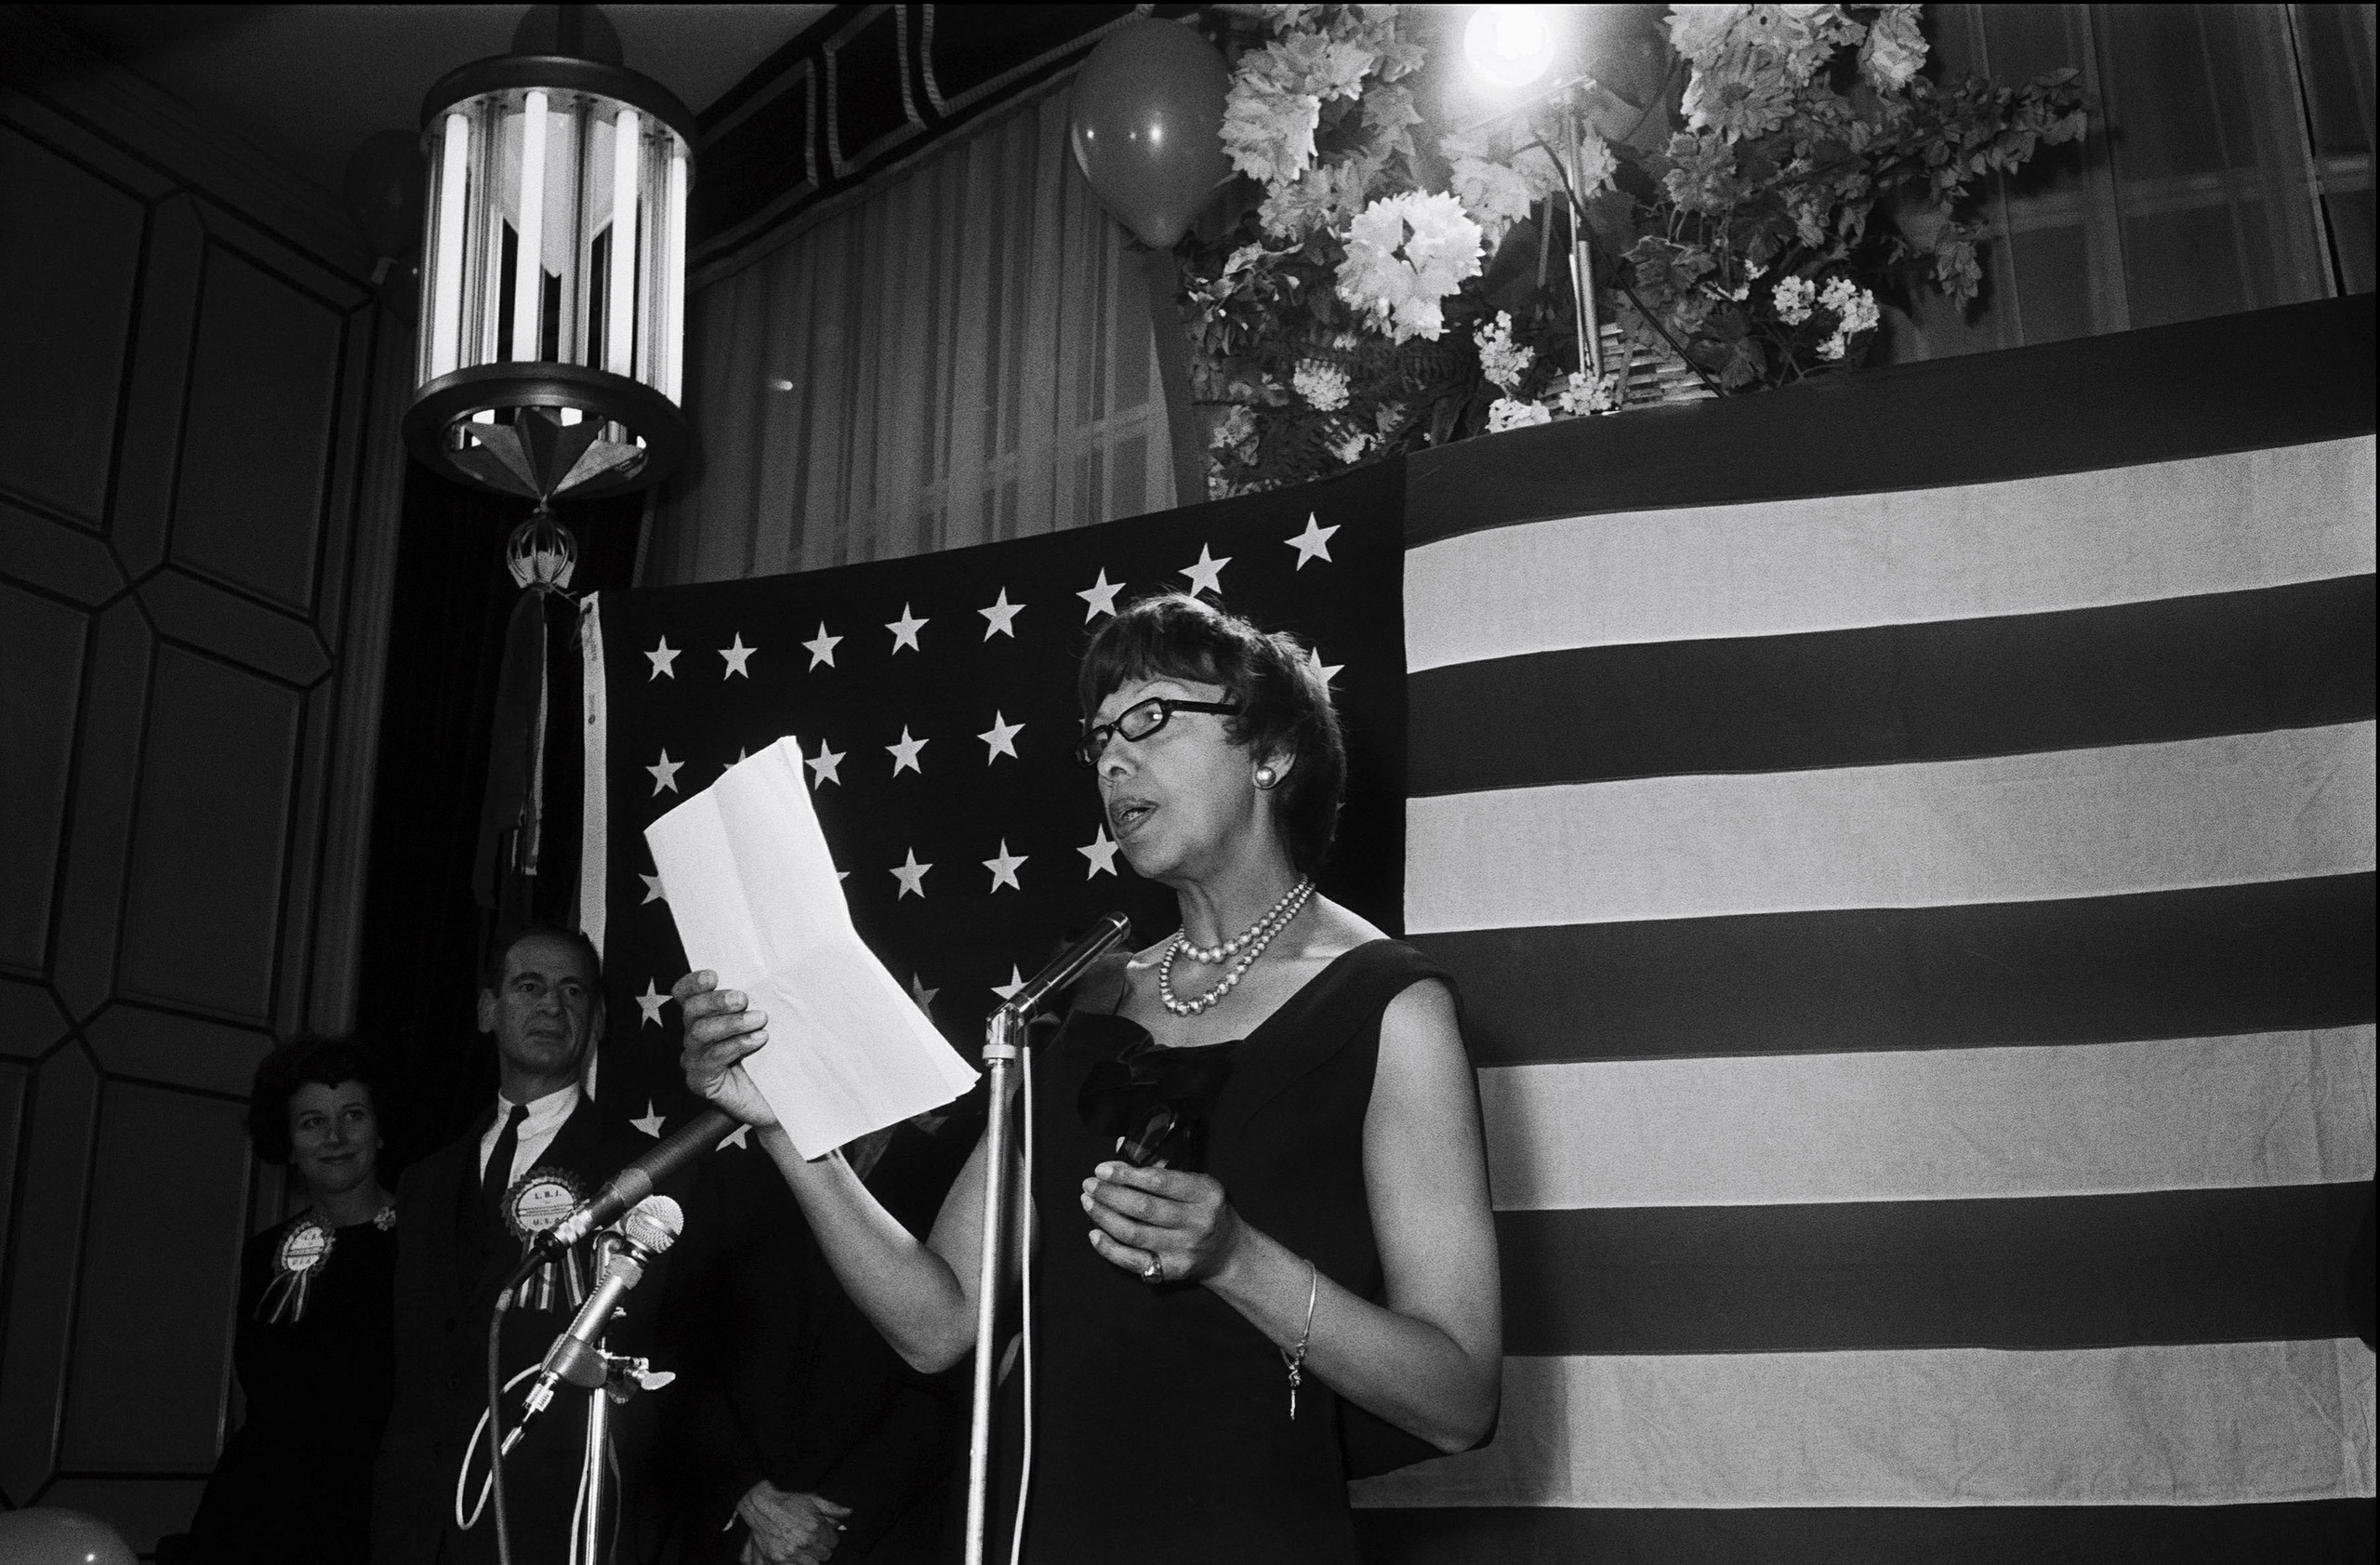 Josephine Baker supports Johnson in U.S. elections in United States in October 1964.